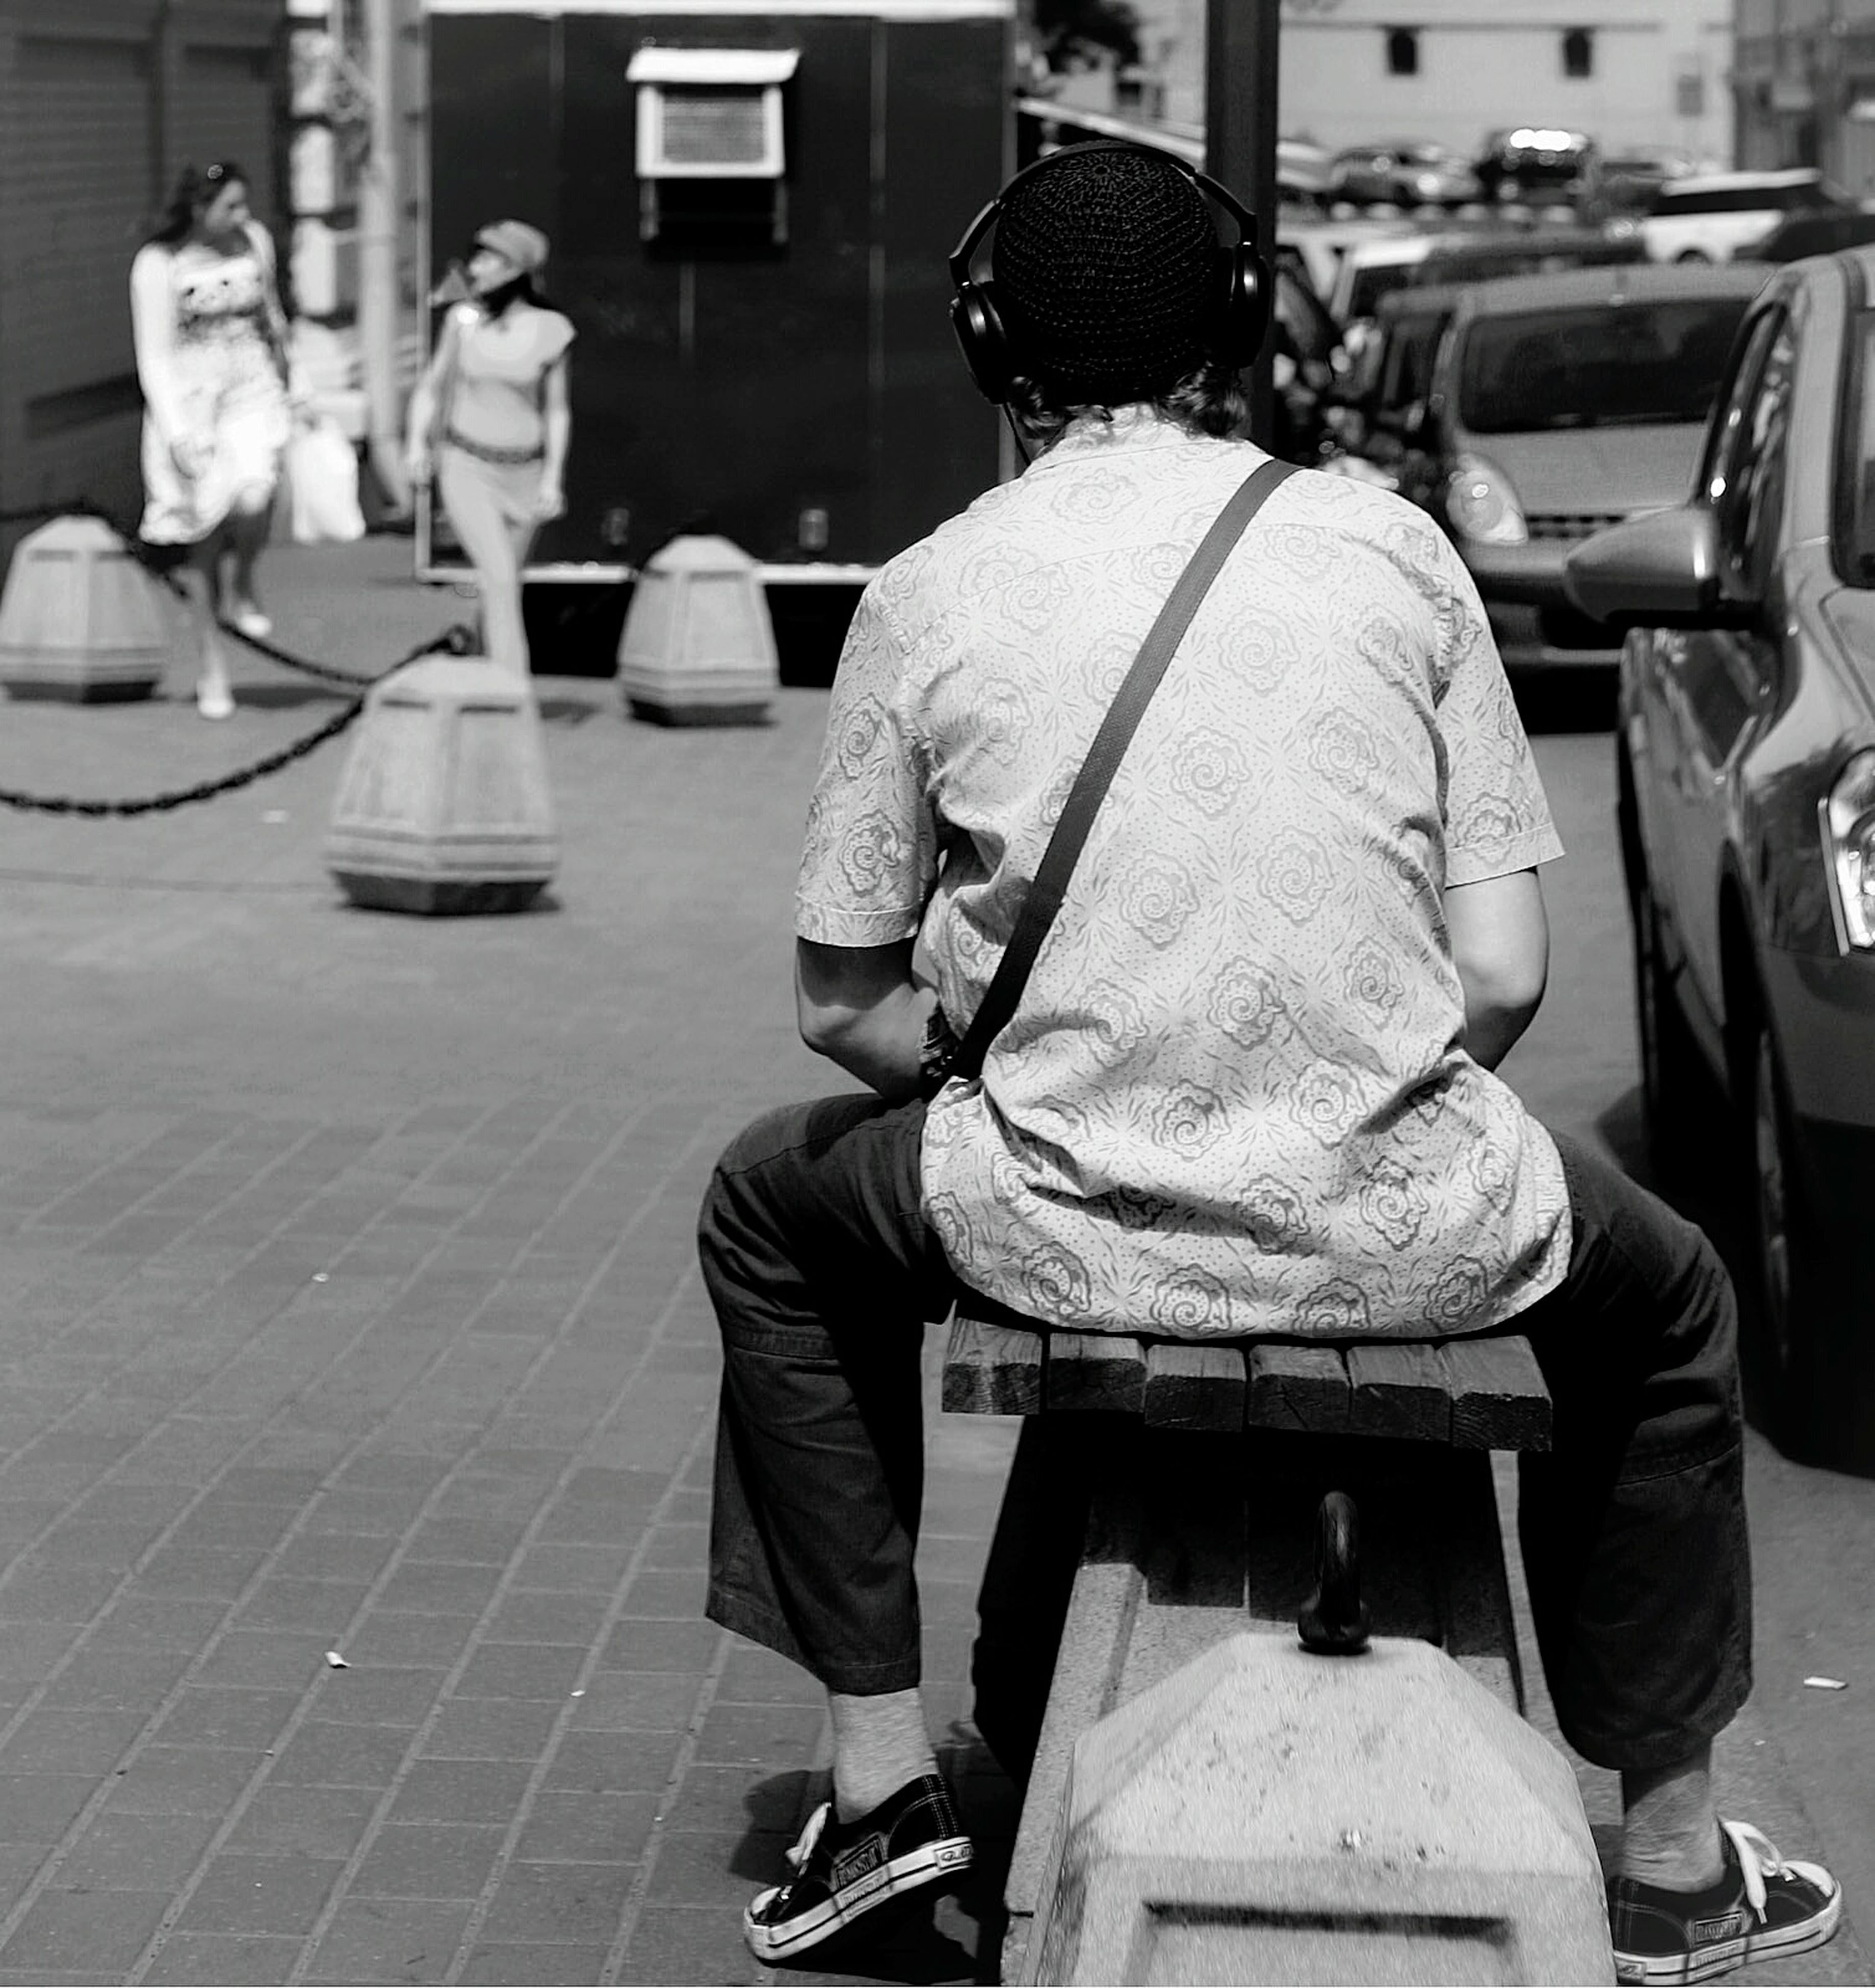 casual clothing, rear view, men, lifestyles, full length, street, city, leisure activity, sitting, standing, occupation, city life, togetherness, building exterior, boys, incidental people, three quarter length